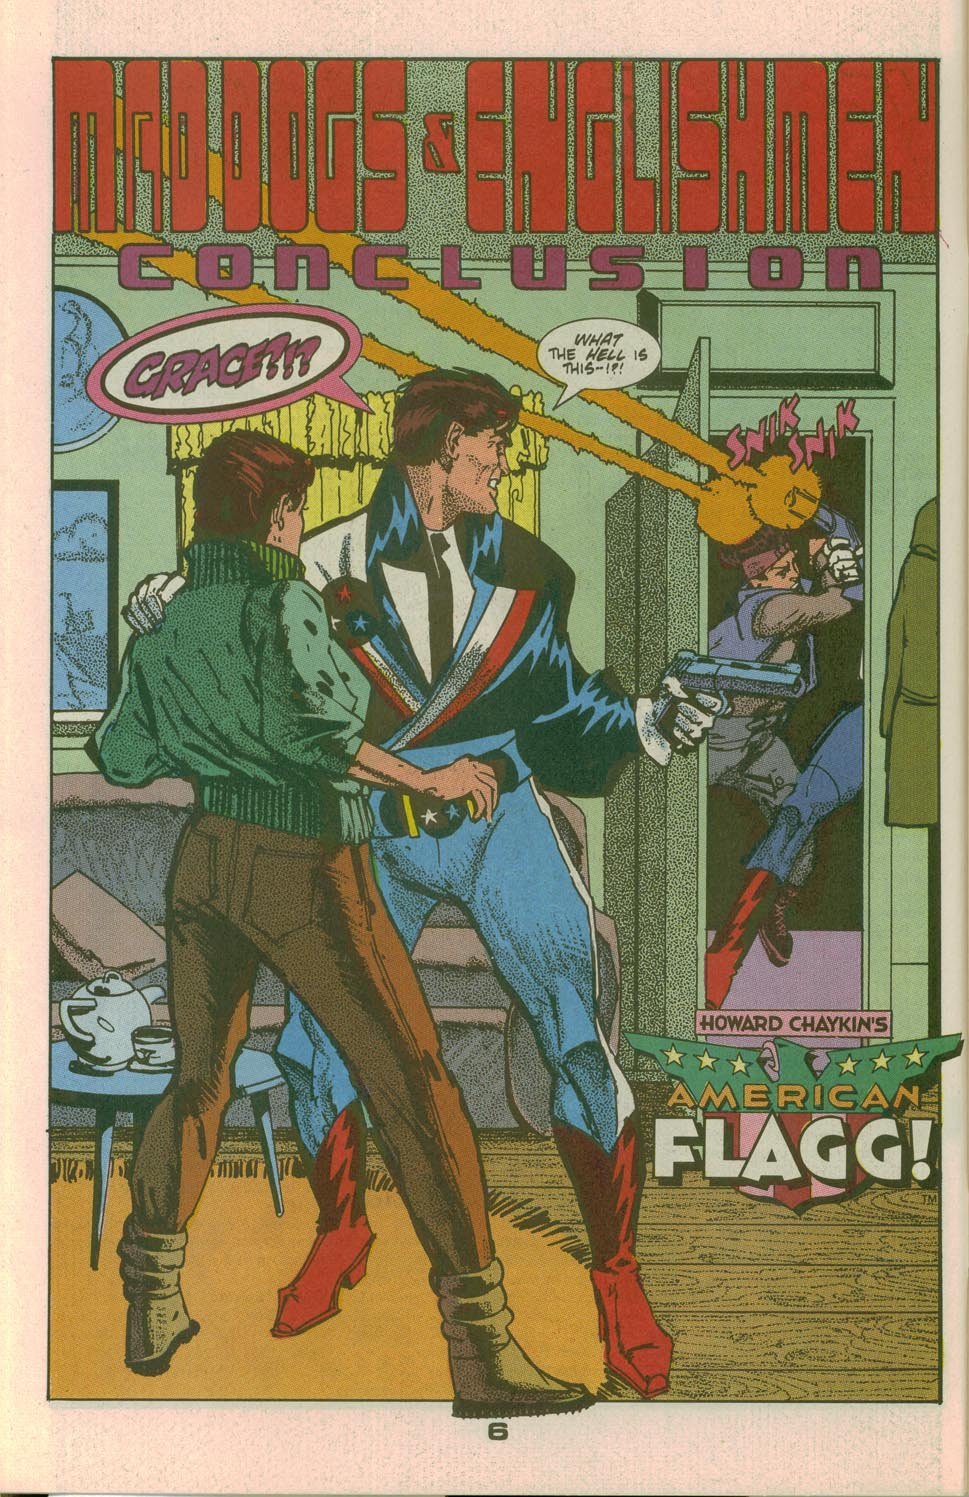 Read online American Flagg! comic -  Issue #26 - 8